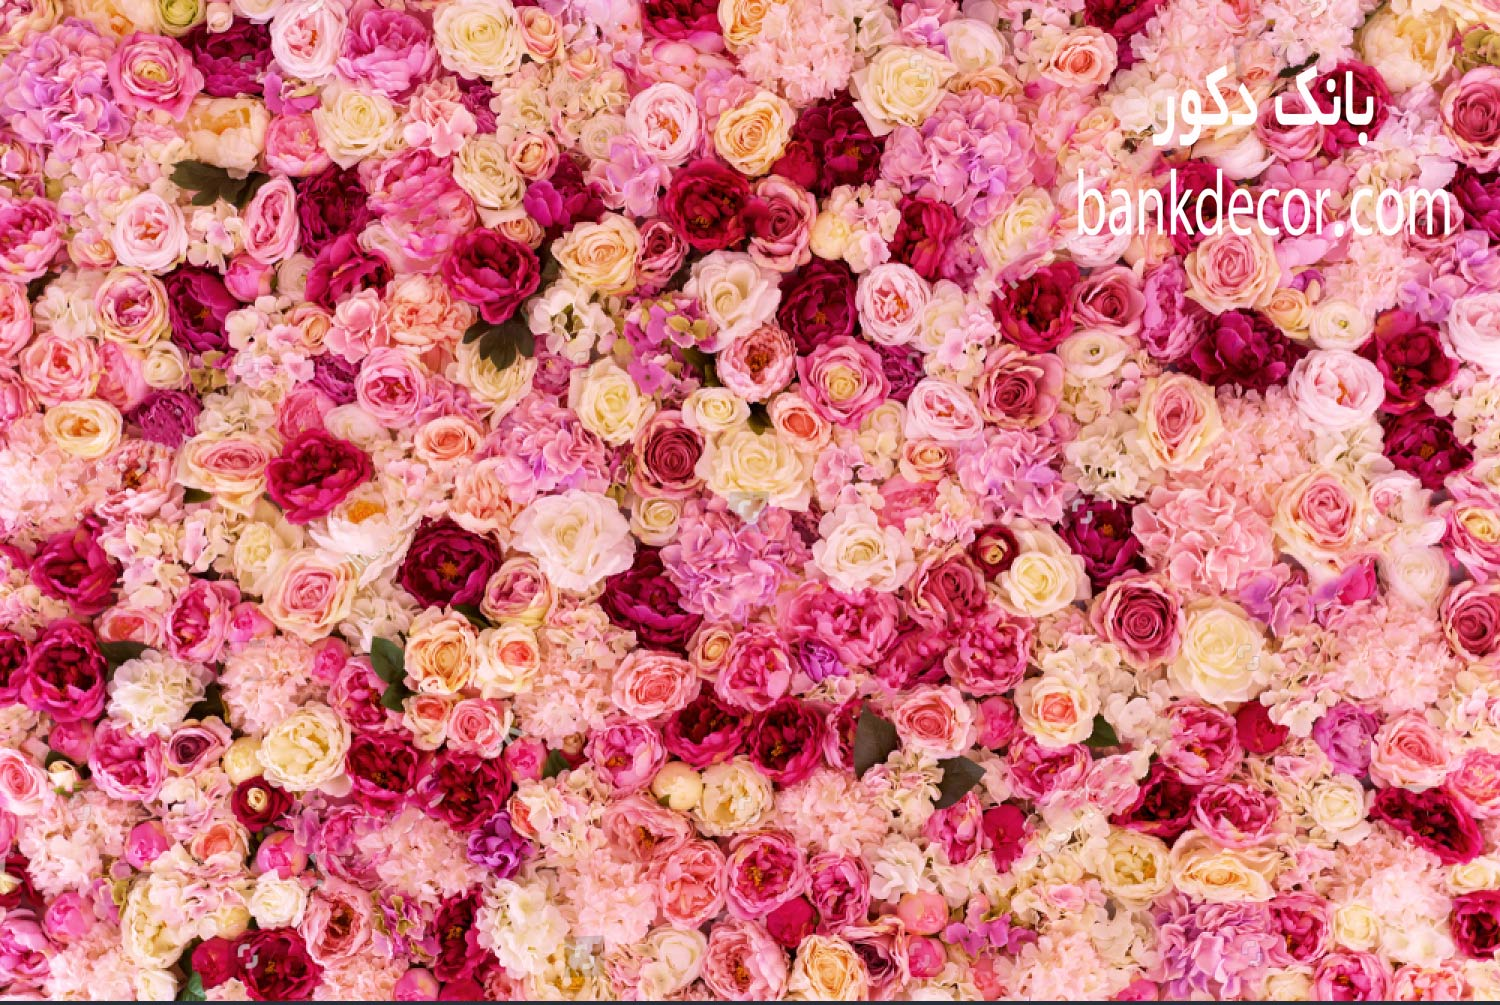 stock-photo-many-various-pink-red-and-white-flowers-abstract-pattern-backgrounds-1242151789.jpg